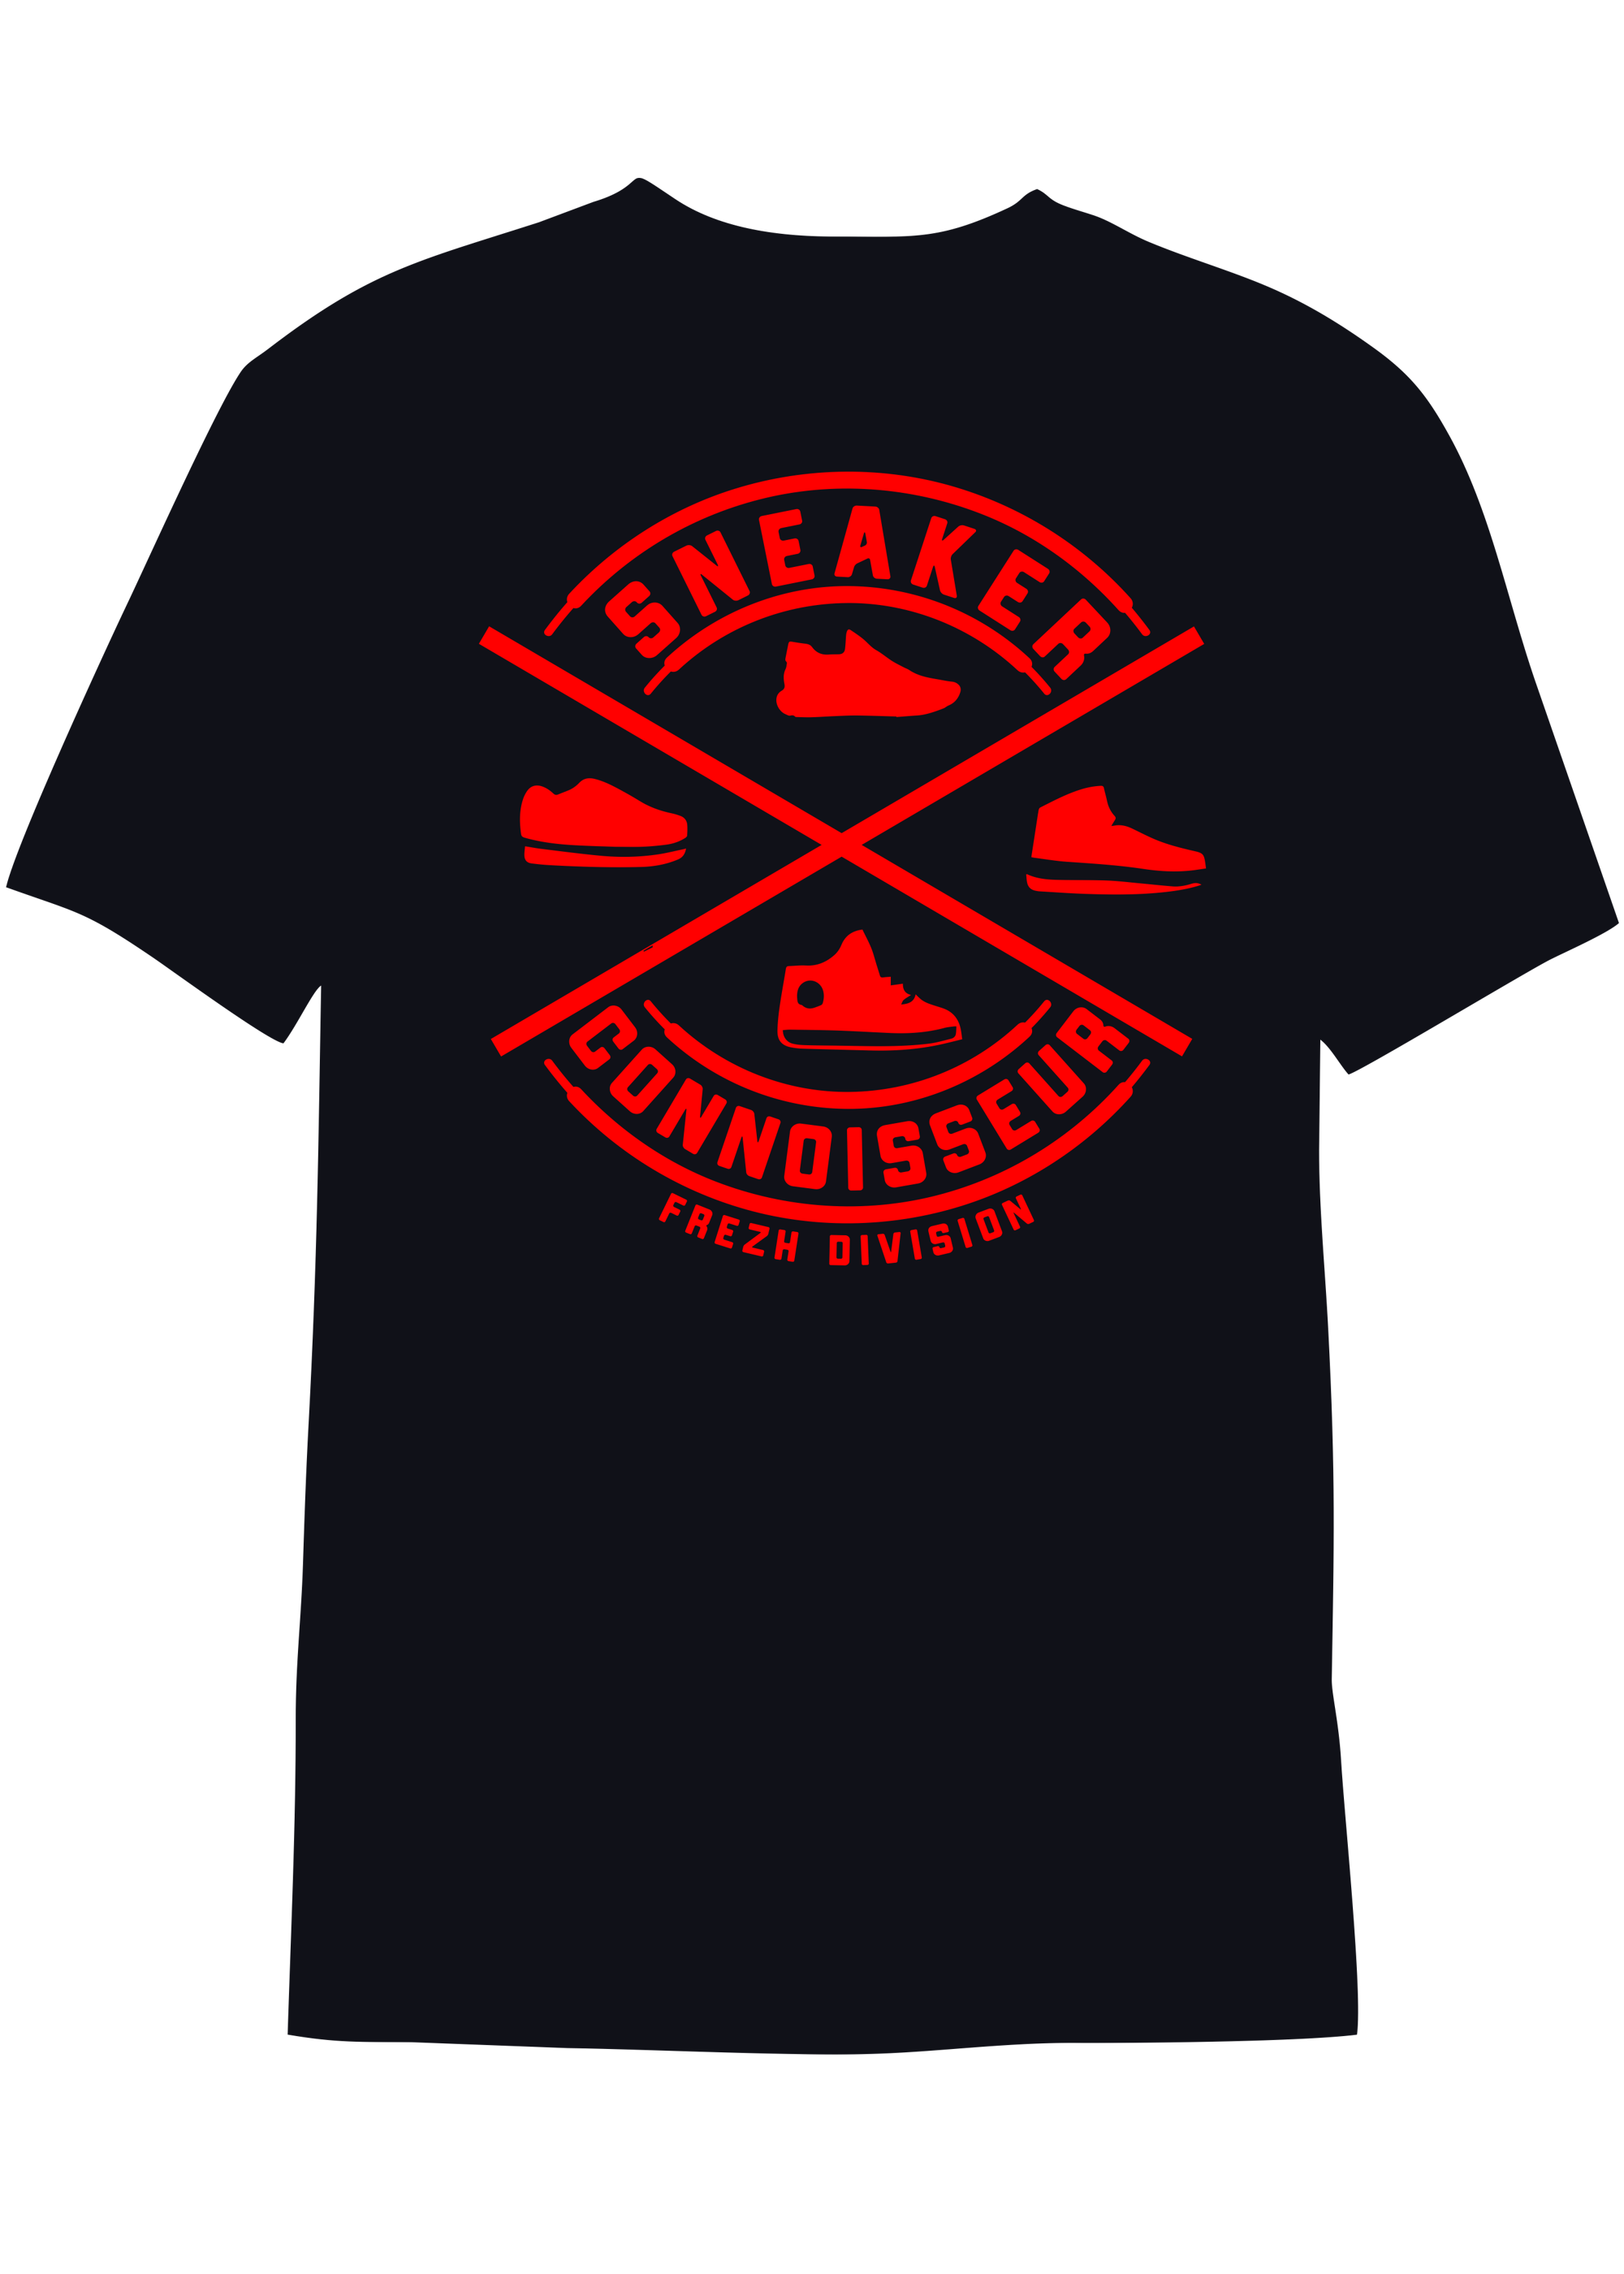 BLACK/RED Sneaker Connoisseur V2 Short Sleeve